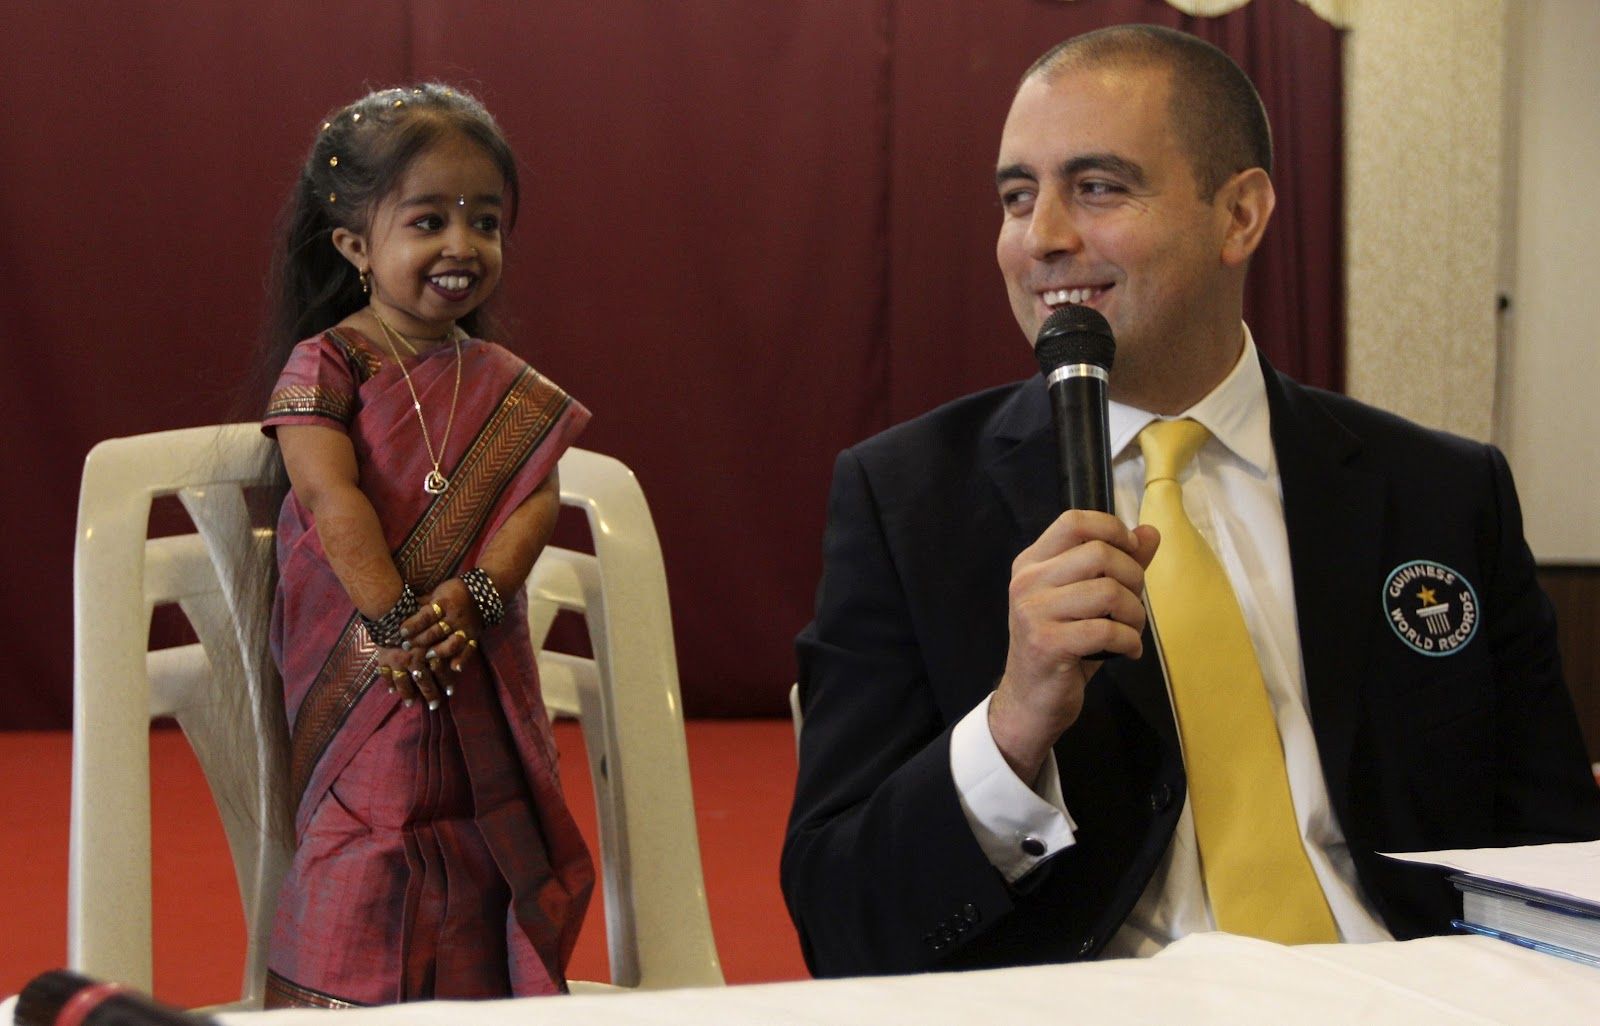 Meet The World S Shortest Woman 19 Year Old Jyoti Amge Is